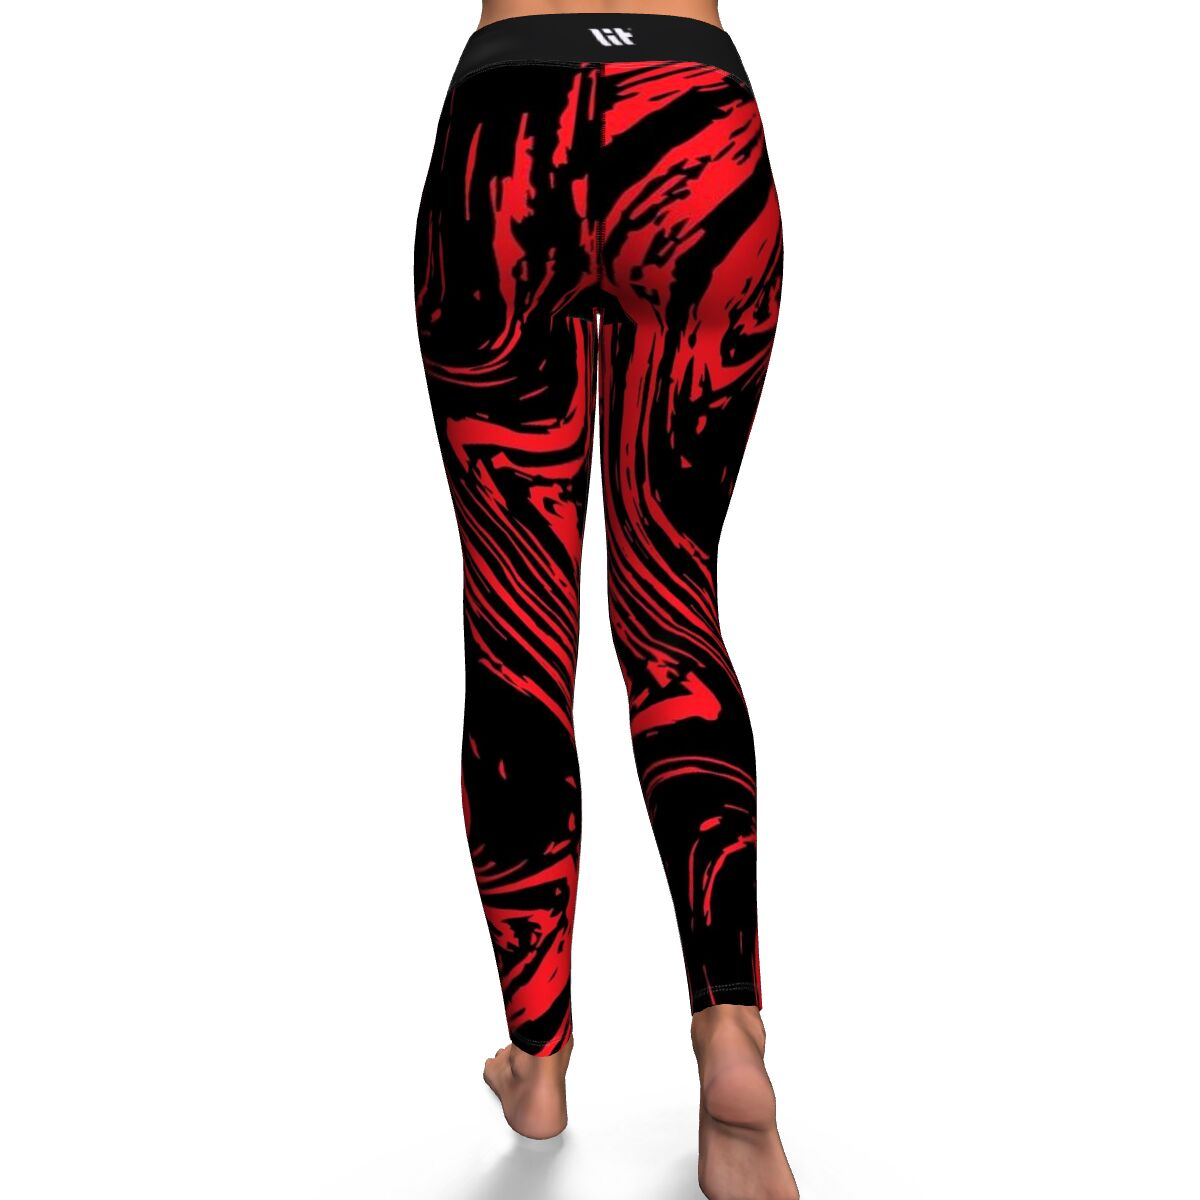 Grungy Thoughts Women's Yoga Leggings